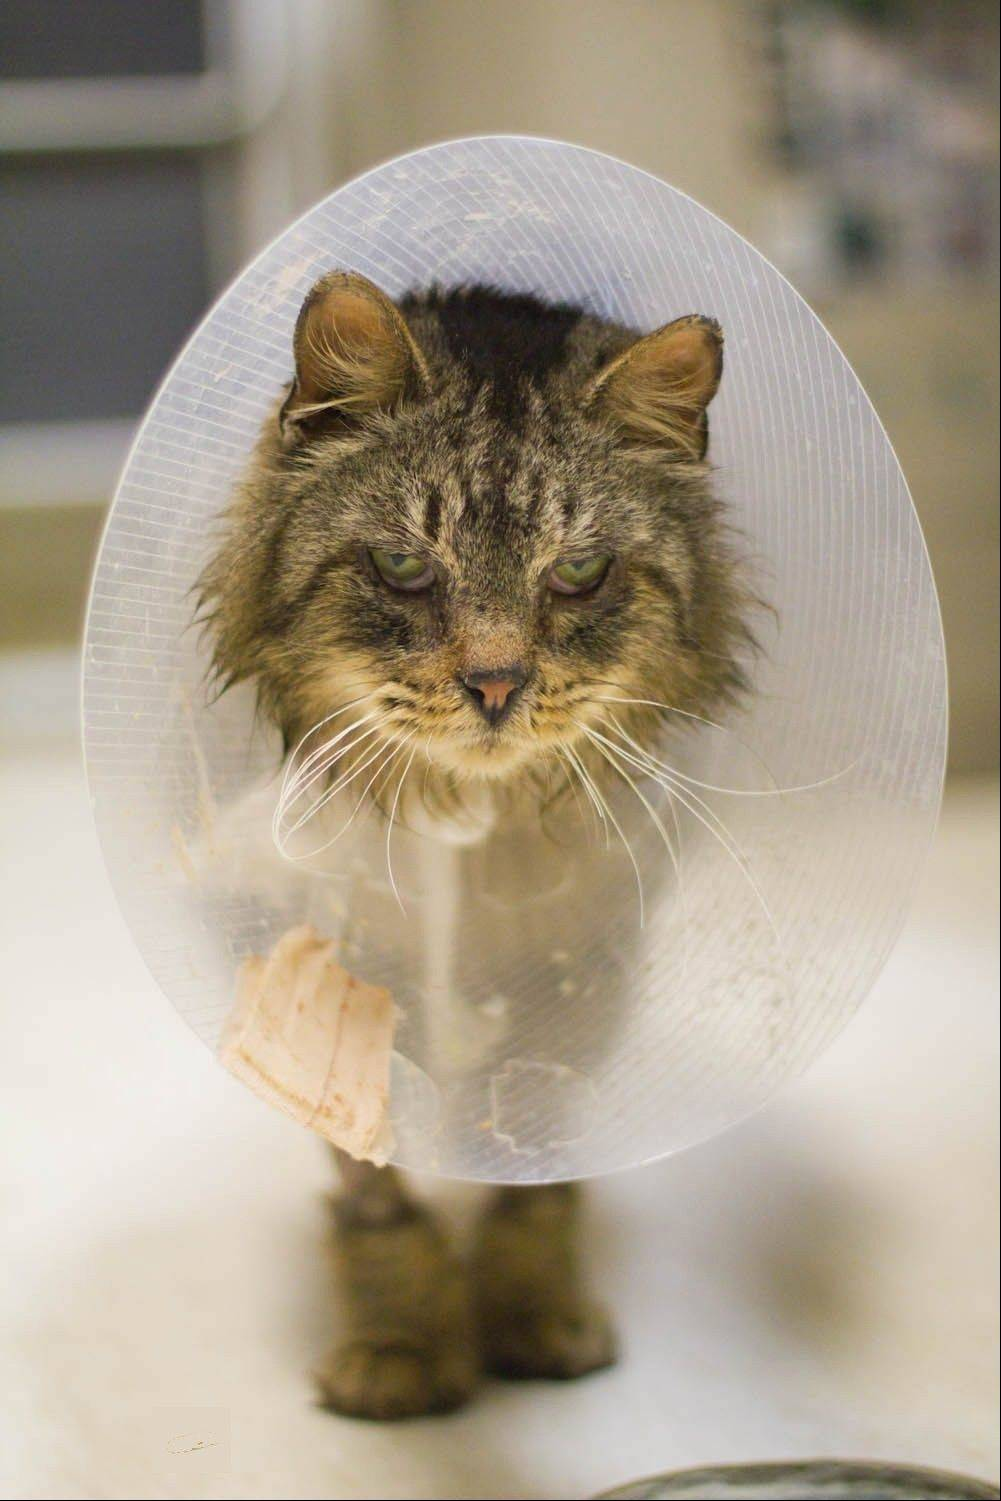 When he was brought in to Save-A-Pet animal shelter, Gentry had suffered severe injuries to his pelvis and rear legs, as well as an upper respiratory infection.